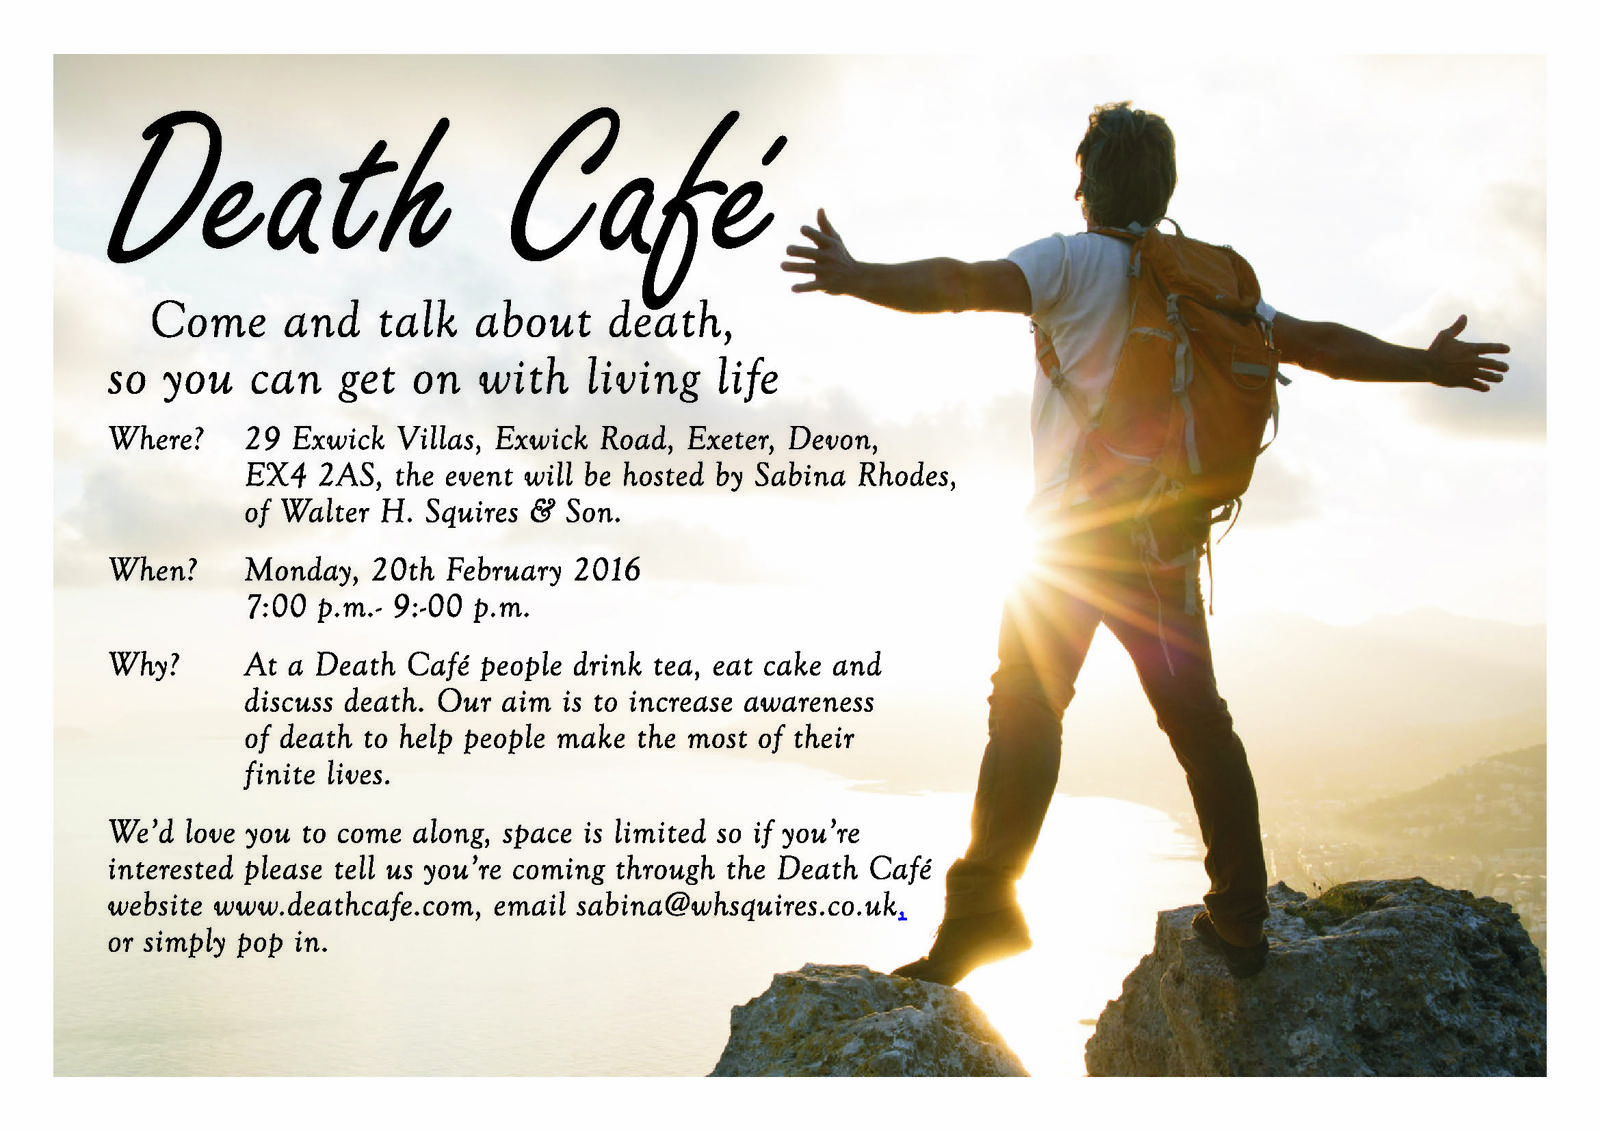 Exeter Death Cafe (Exwick)